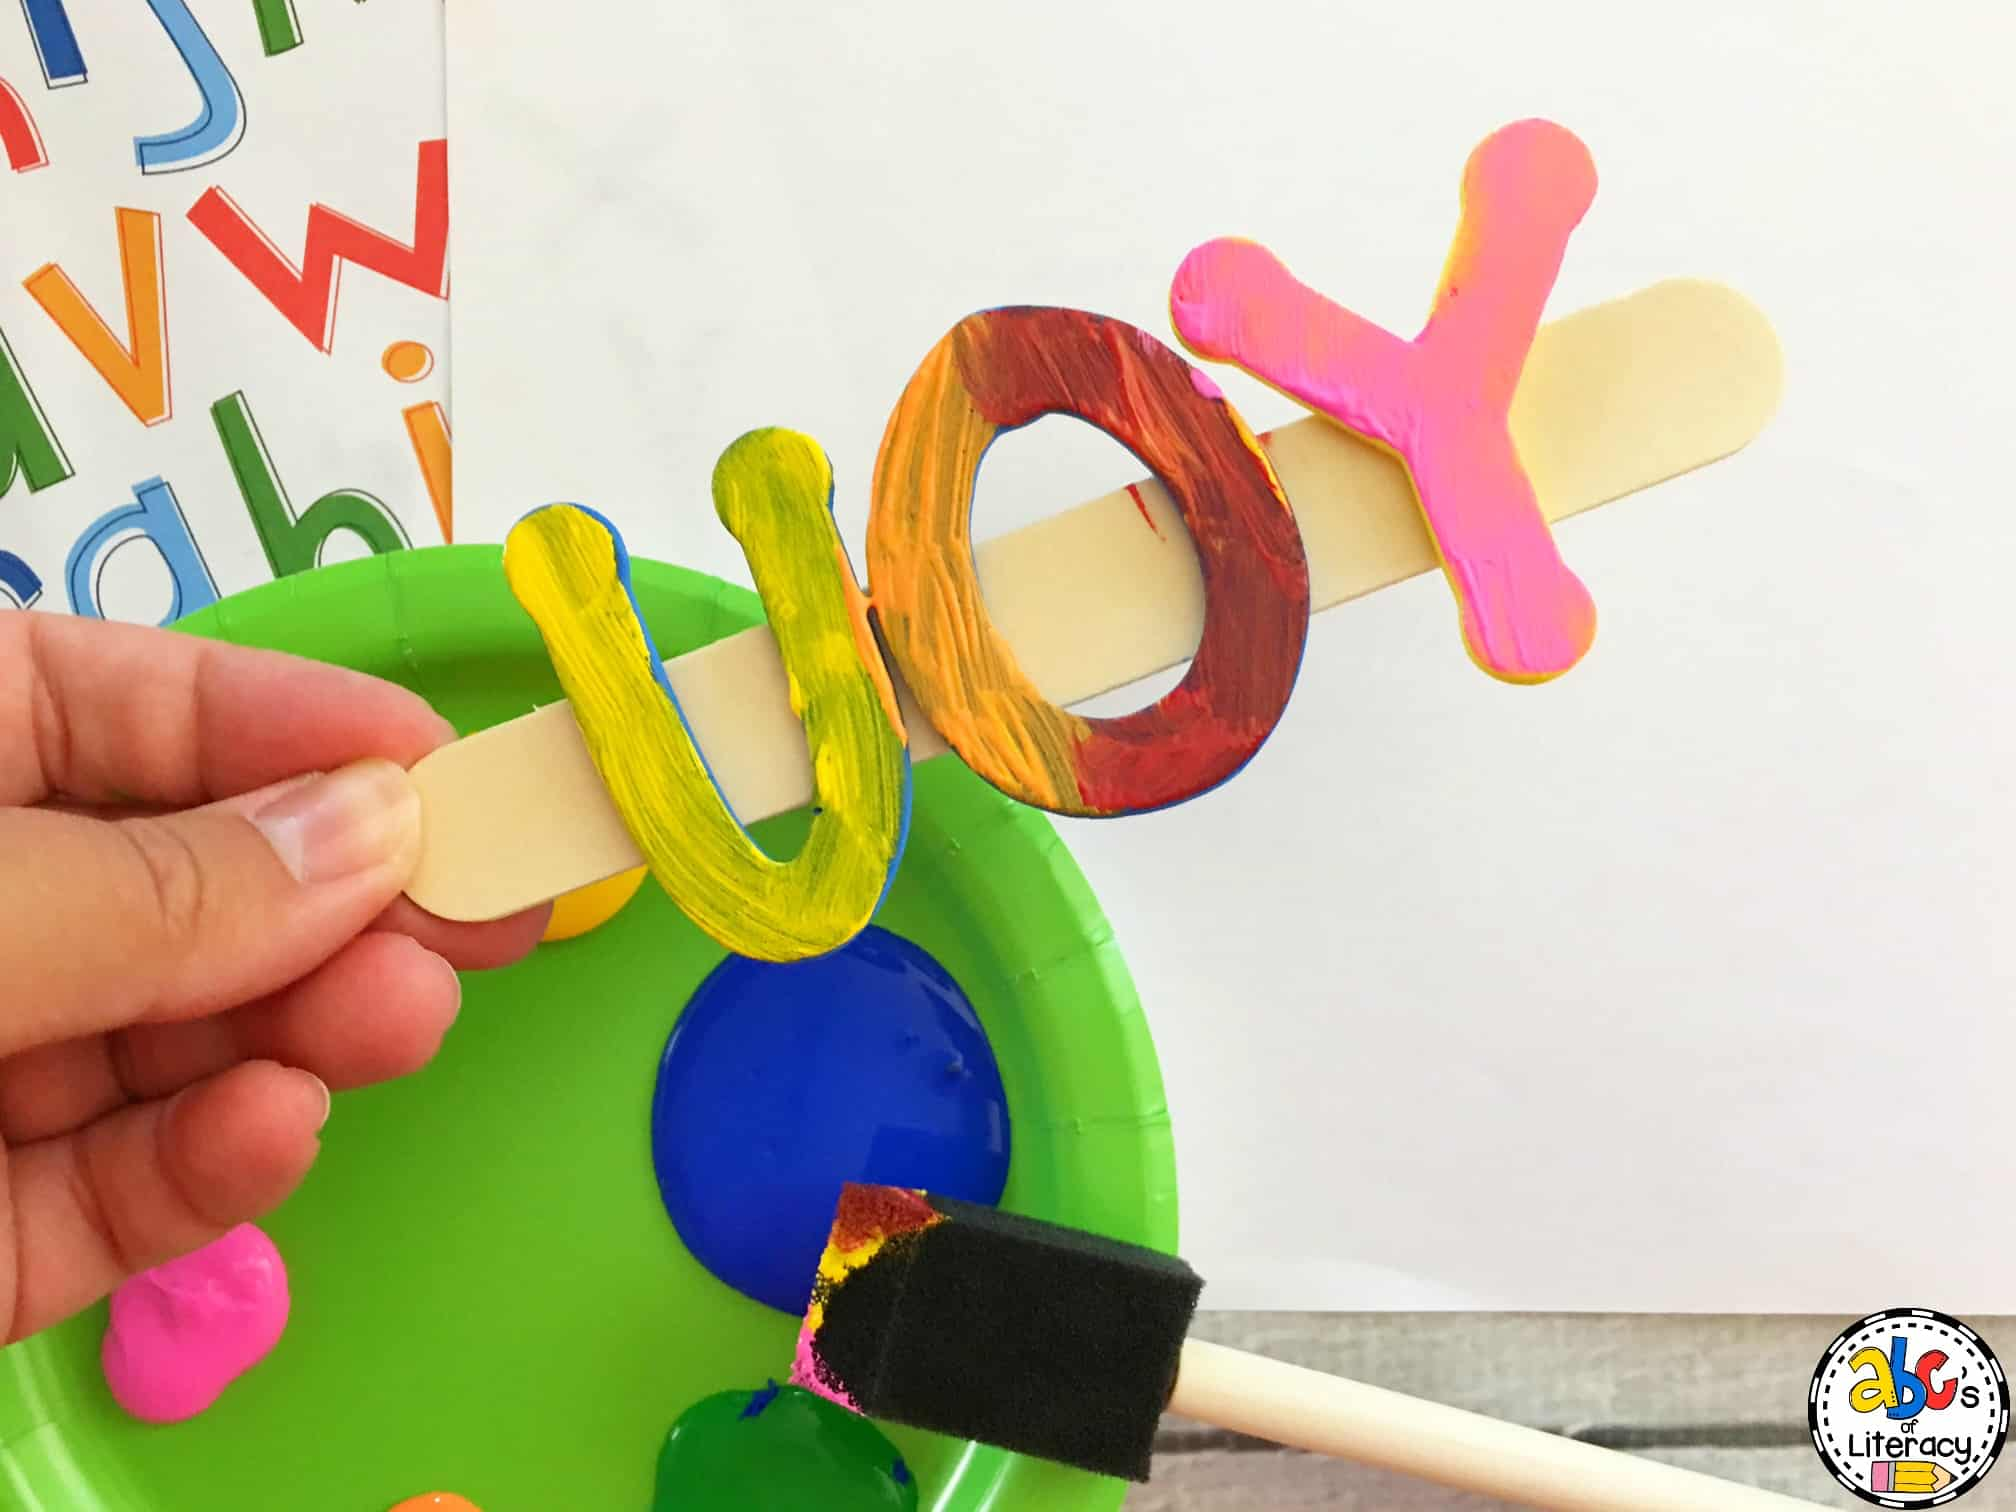 How to make sight word stamps for literacy centers you can use one color or try painting the letters with a few different colors so the words look sciox Image collections